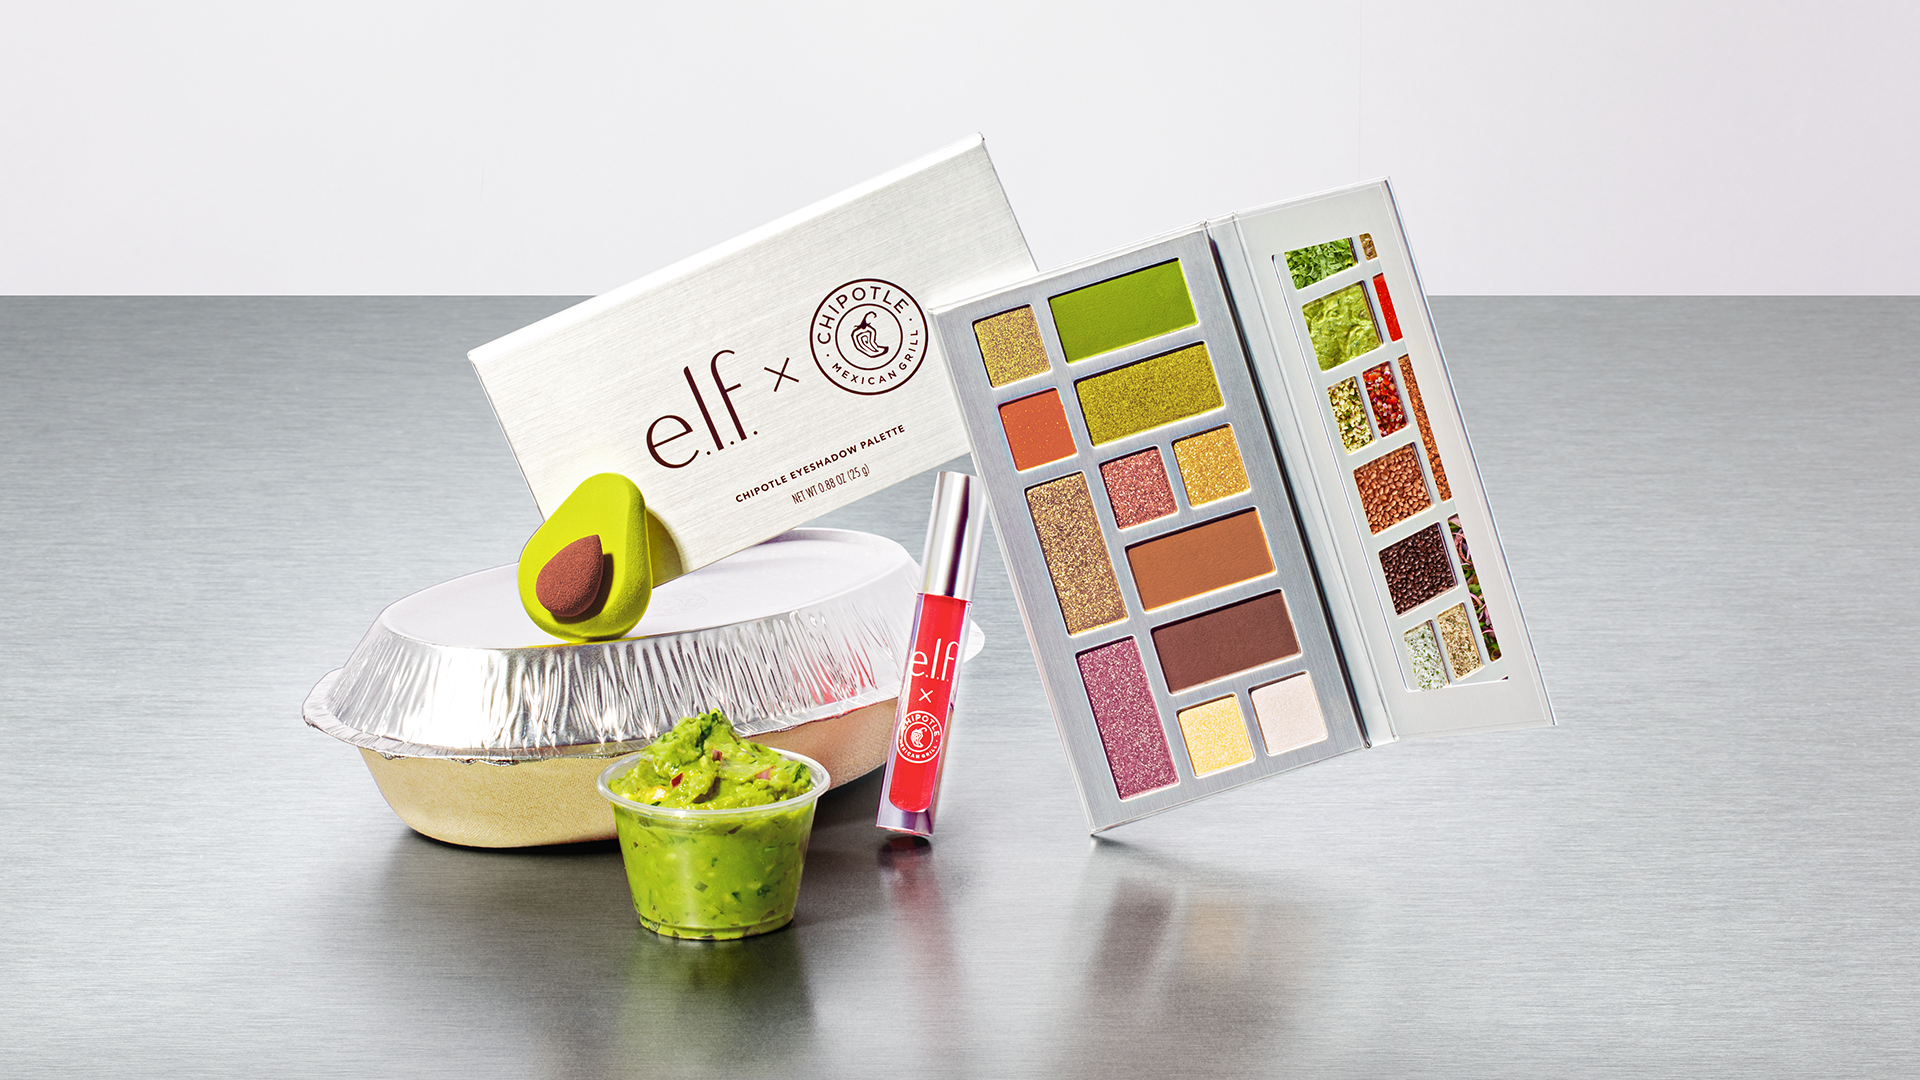 Chipotle goes glam with new beauty collaboration, with an eye toward Gen Z consumers - Yahoo Finance